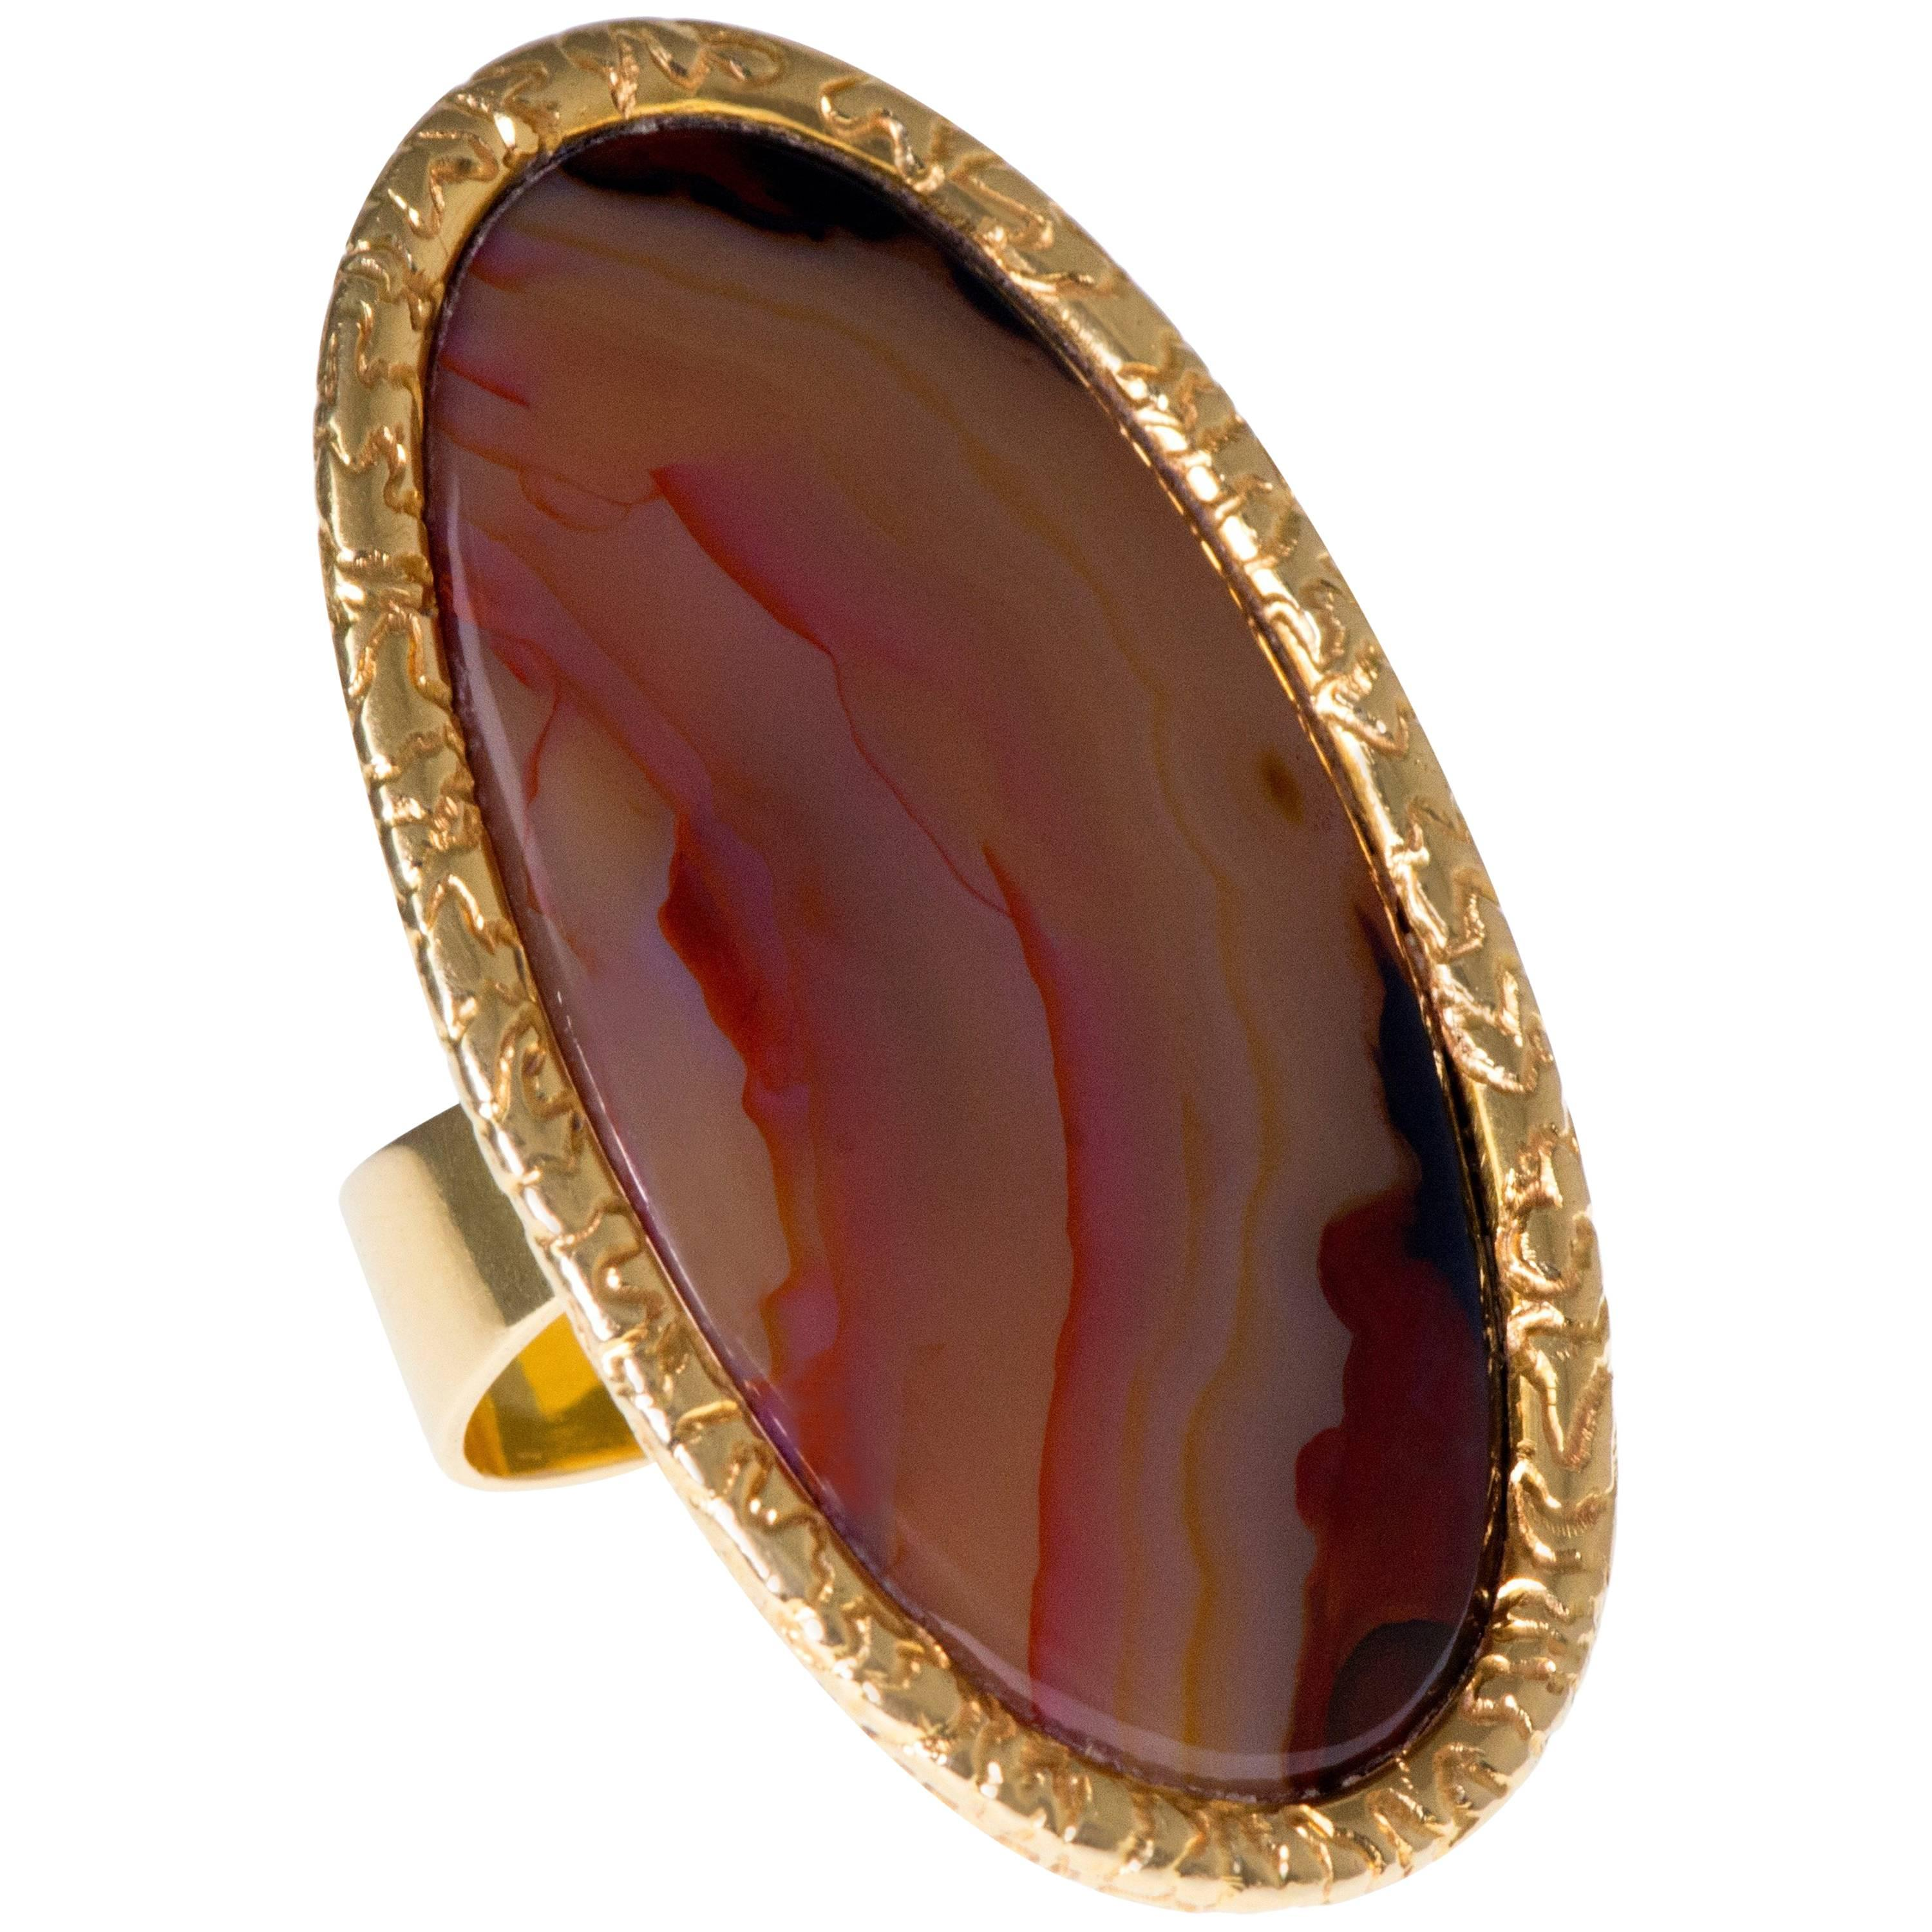 1972 Andrew Grima Agate and Gold Ring